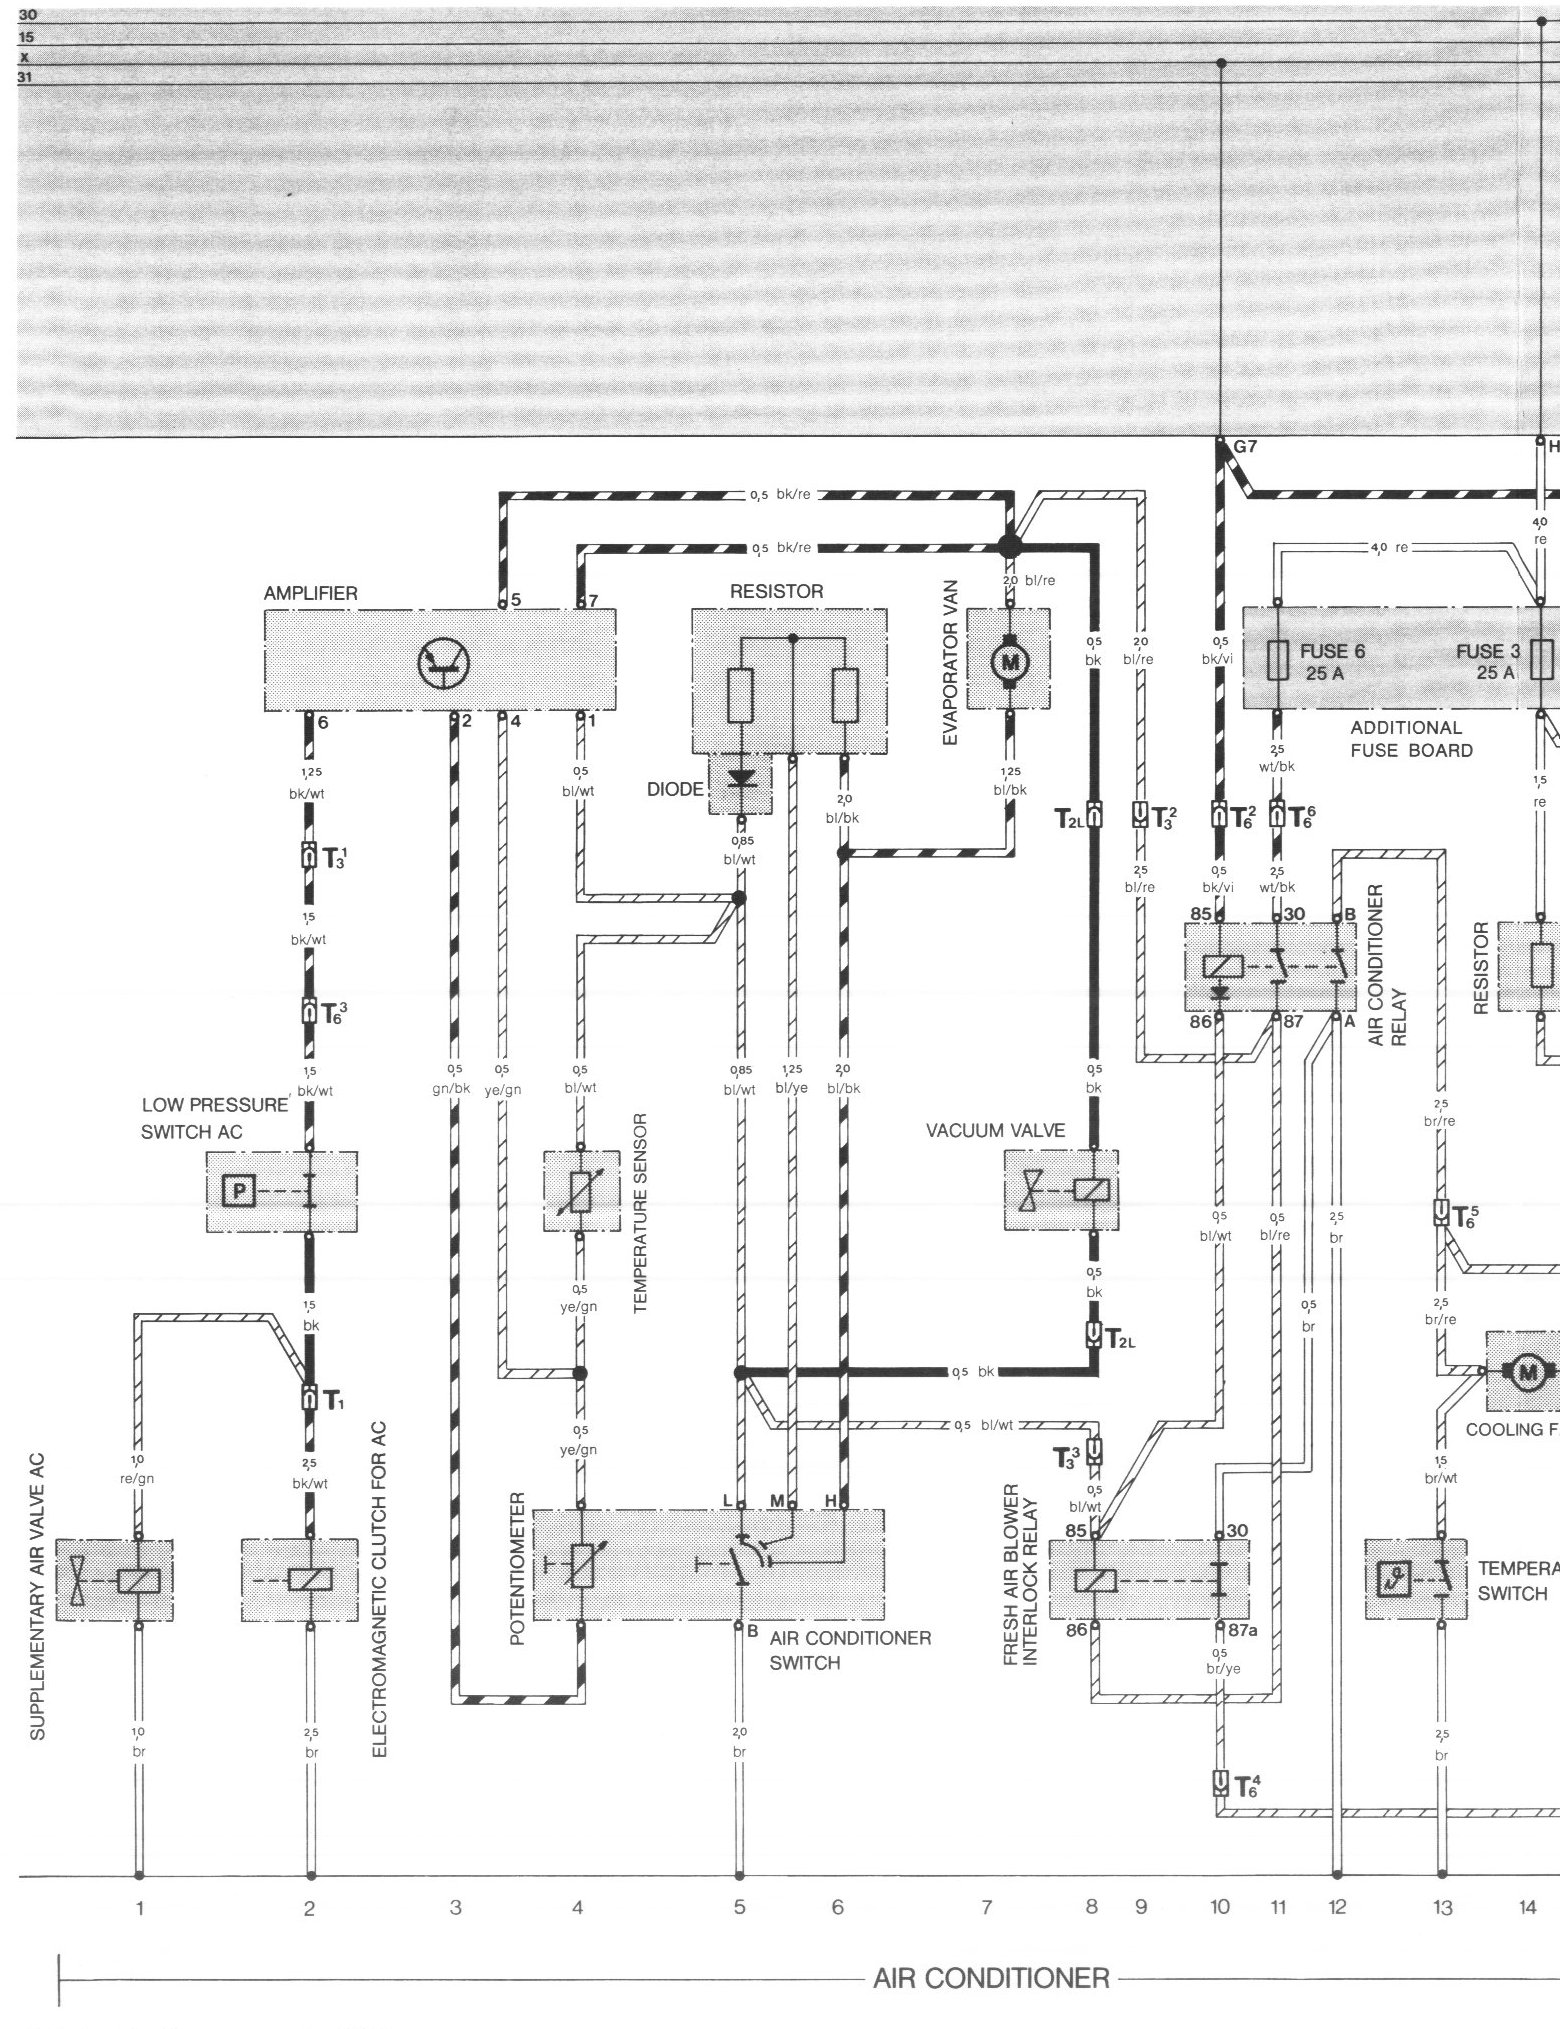 944_84_AC_1 pelican parts porsche 924 944 electrical diagrams 1983 porsche 944 fuse box diagram at bayanpartner.co